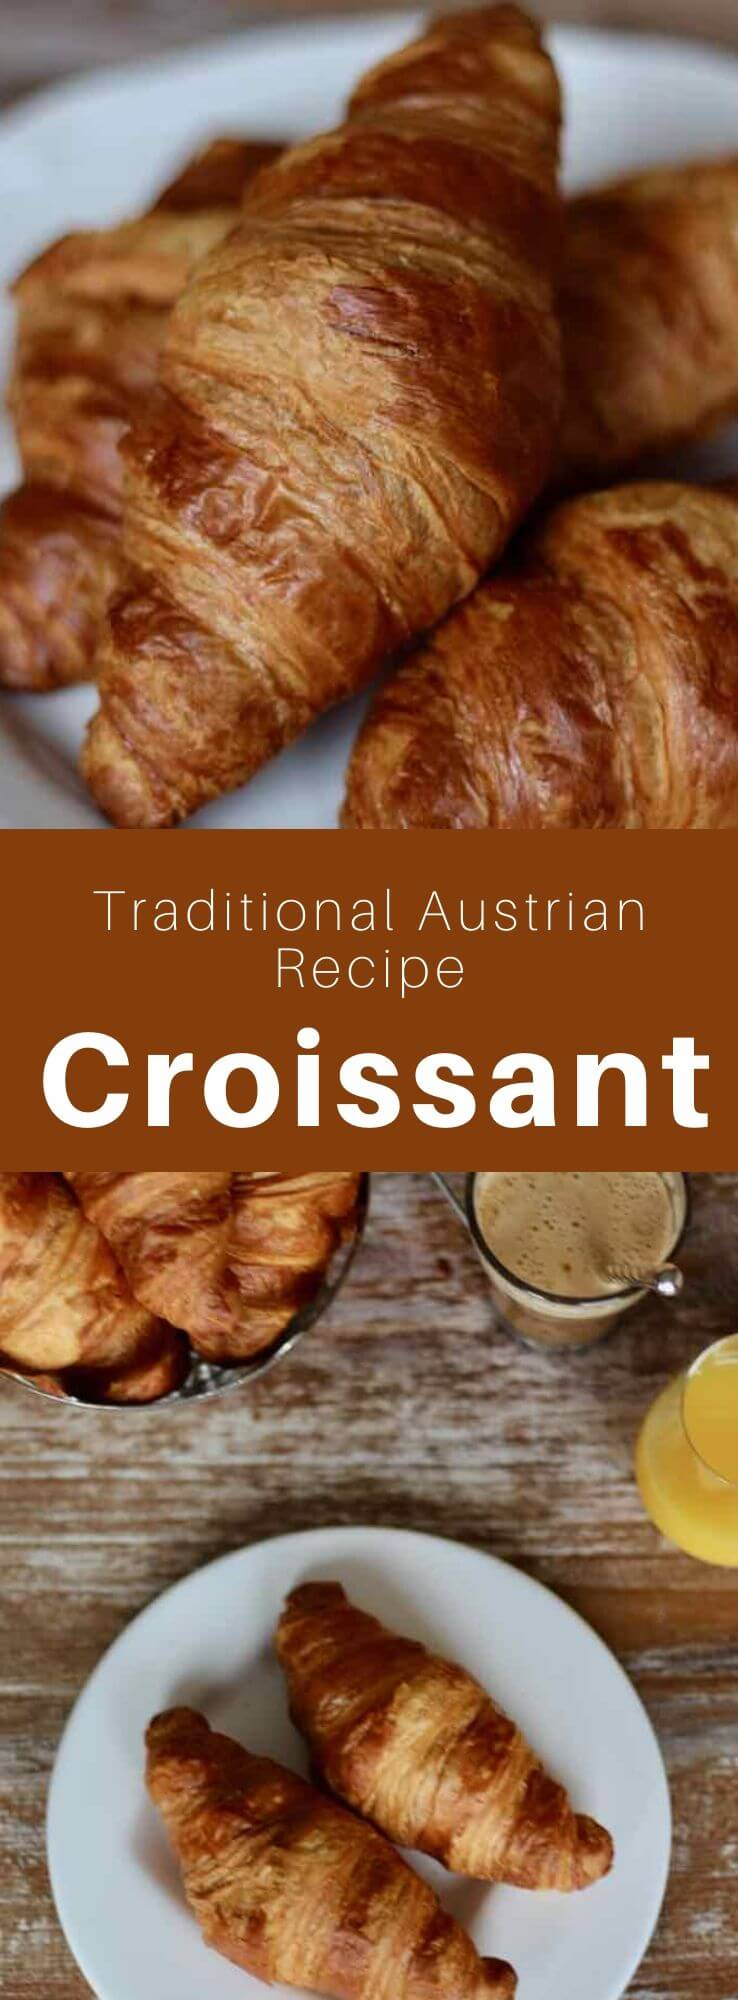 The croissant is a pastry made with leavened puff pastry and butter, originating in Vienna and now an essential item of French breakfasts. #French #FrenchBreakfast #Austria #AustrianCuisine #WorldCuisine #196flavors